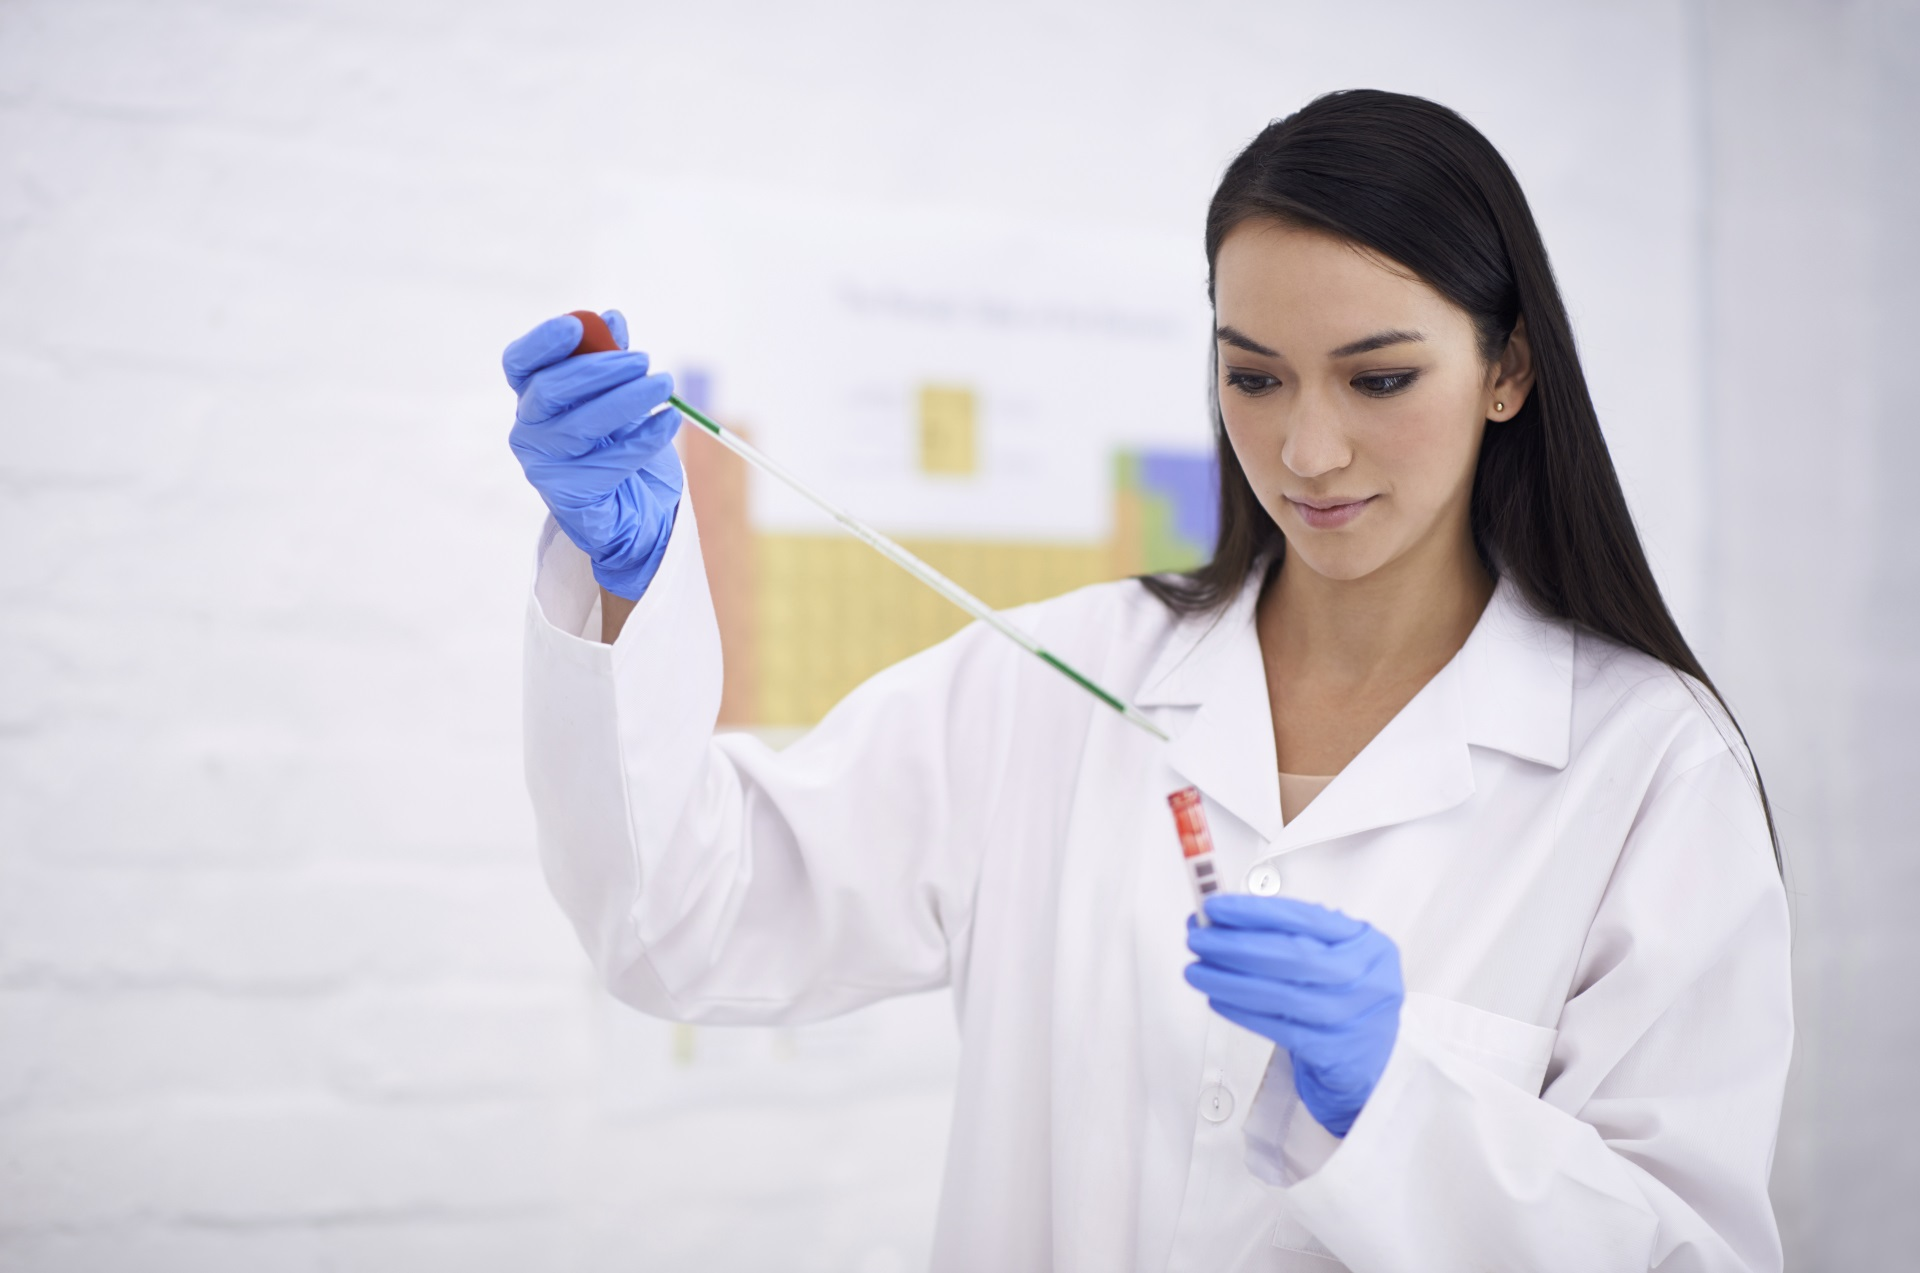 life science researcher